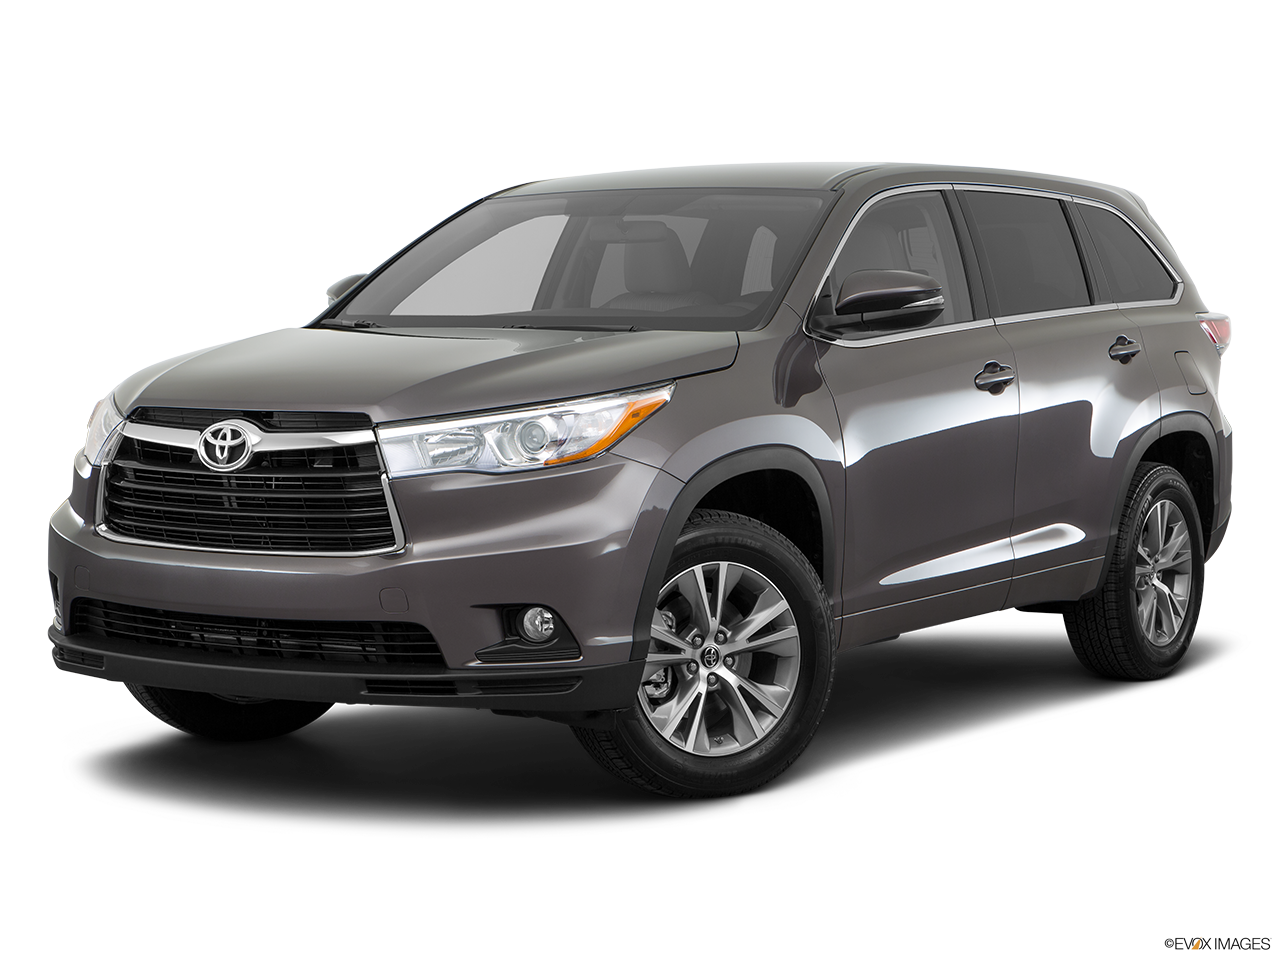 Test Drive A 2016 Toyota Highlander at Moss Bros Toyota of Moreno Valley in Moreno Valley